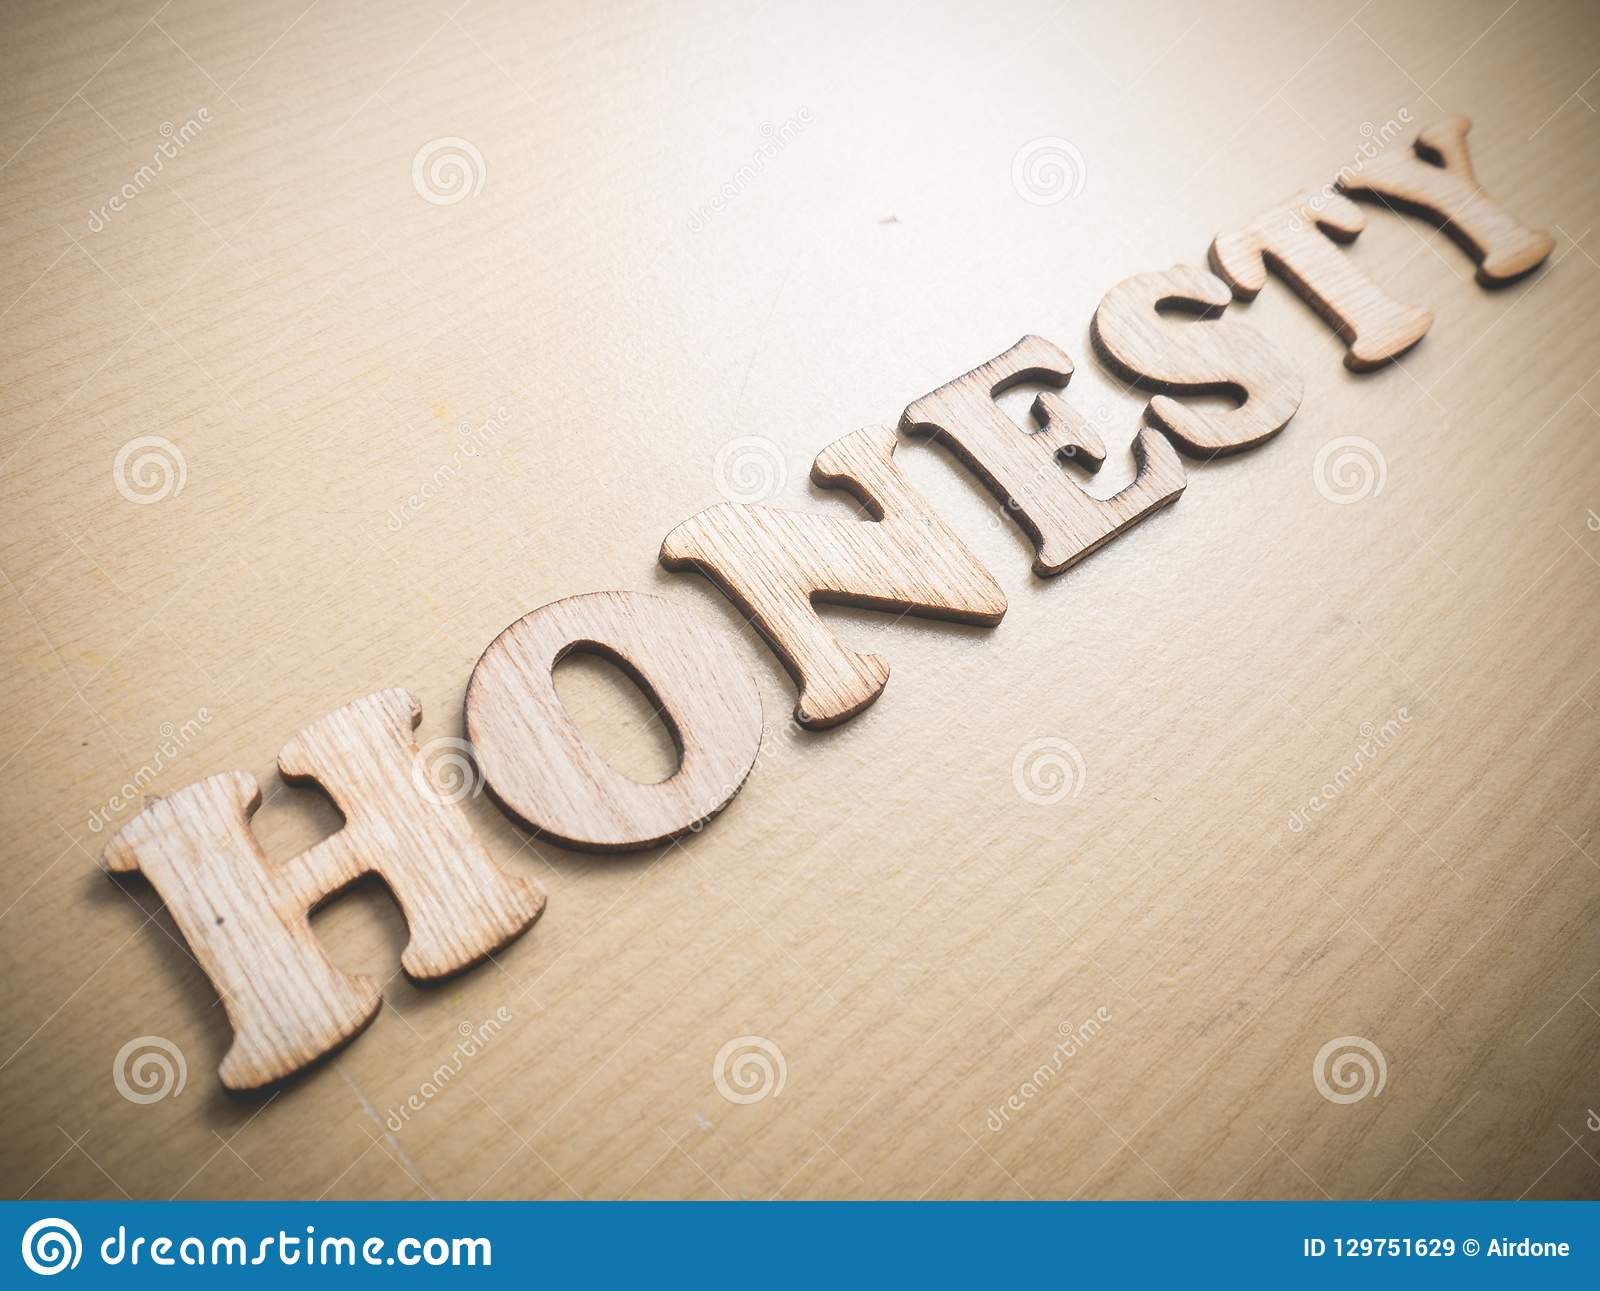 Honesty, Motivational Words Quotes Concept Stock Image